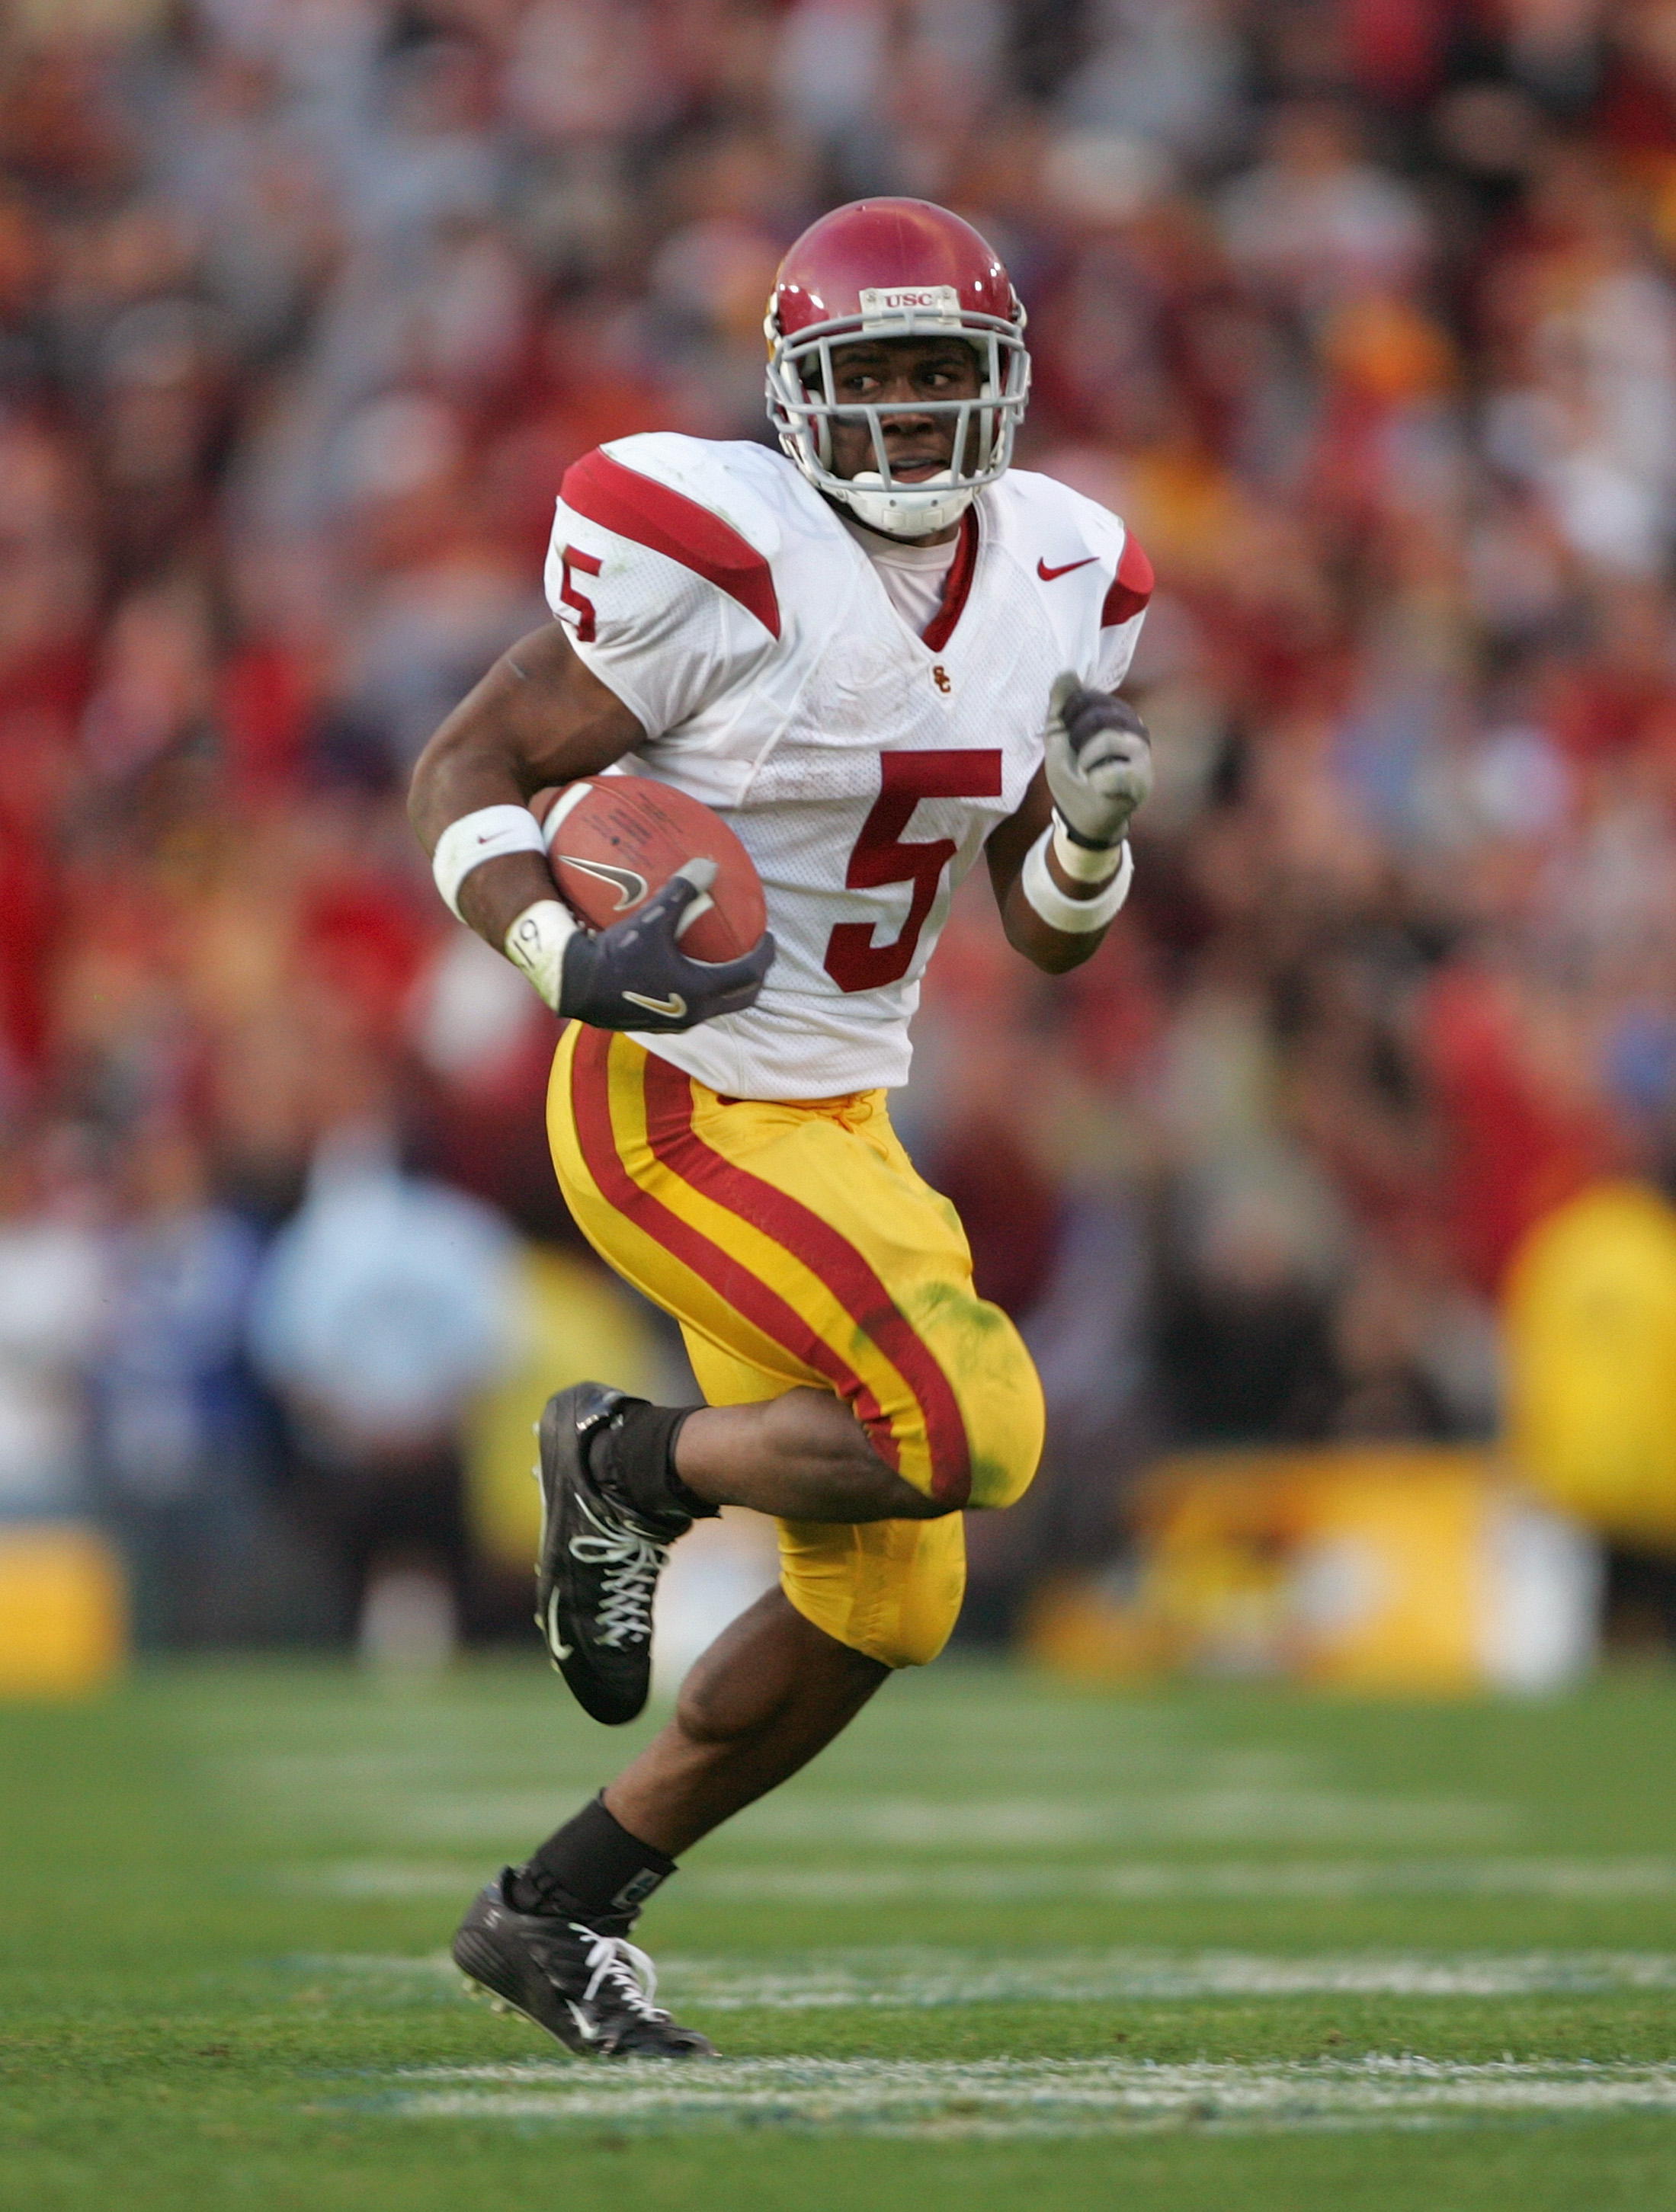 PASADENA, CA - DECEMBER 4:  Reggie Bush #5 of the USC Trojans carries the ball during the game against the UCLA Bruins on December 4, 2004 at the Rose Bowl in Pasadena, California.  USC won 29-24. (Photo by Harry How/Getty Images)